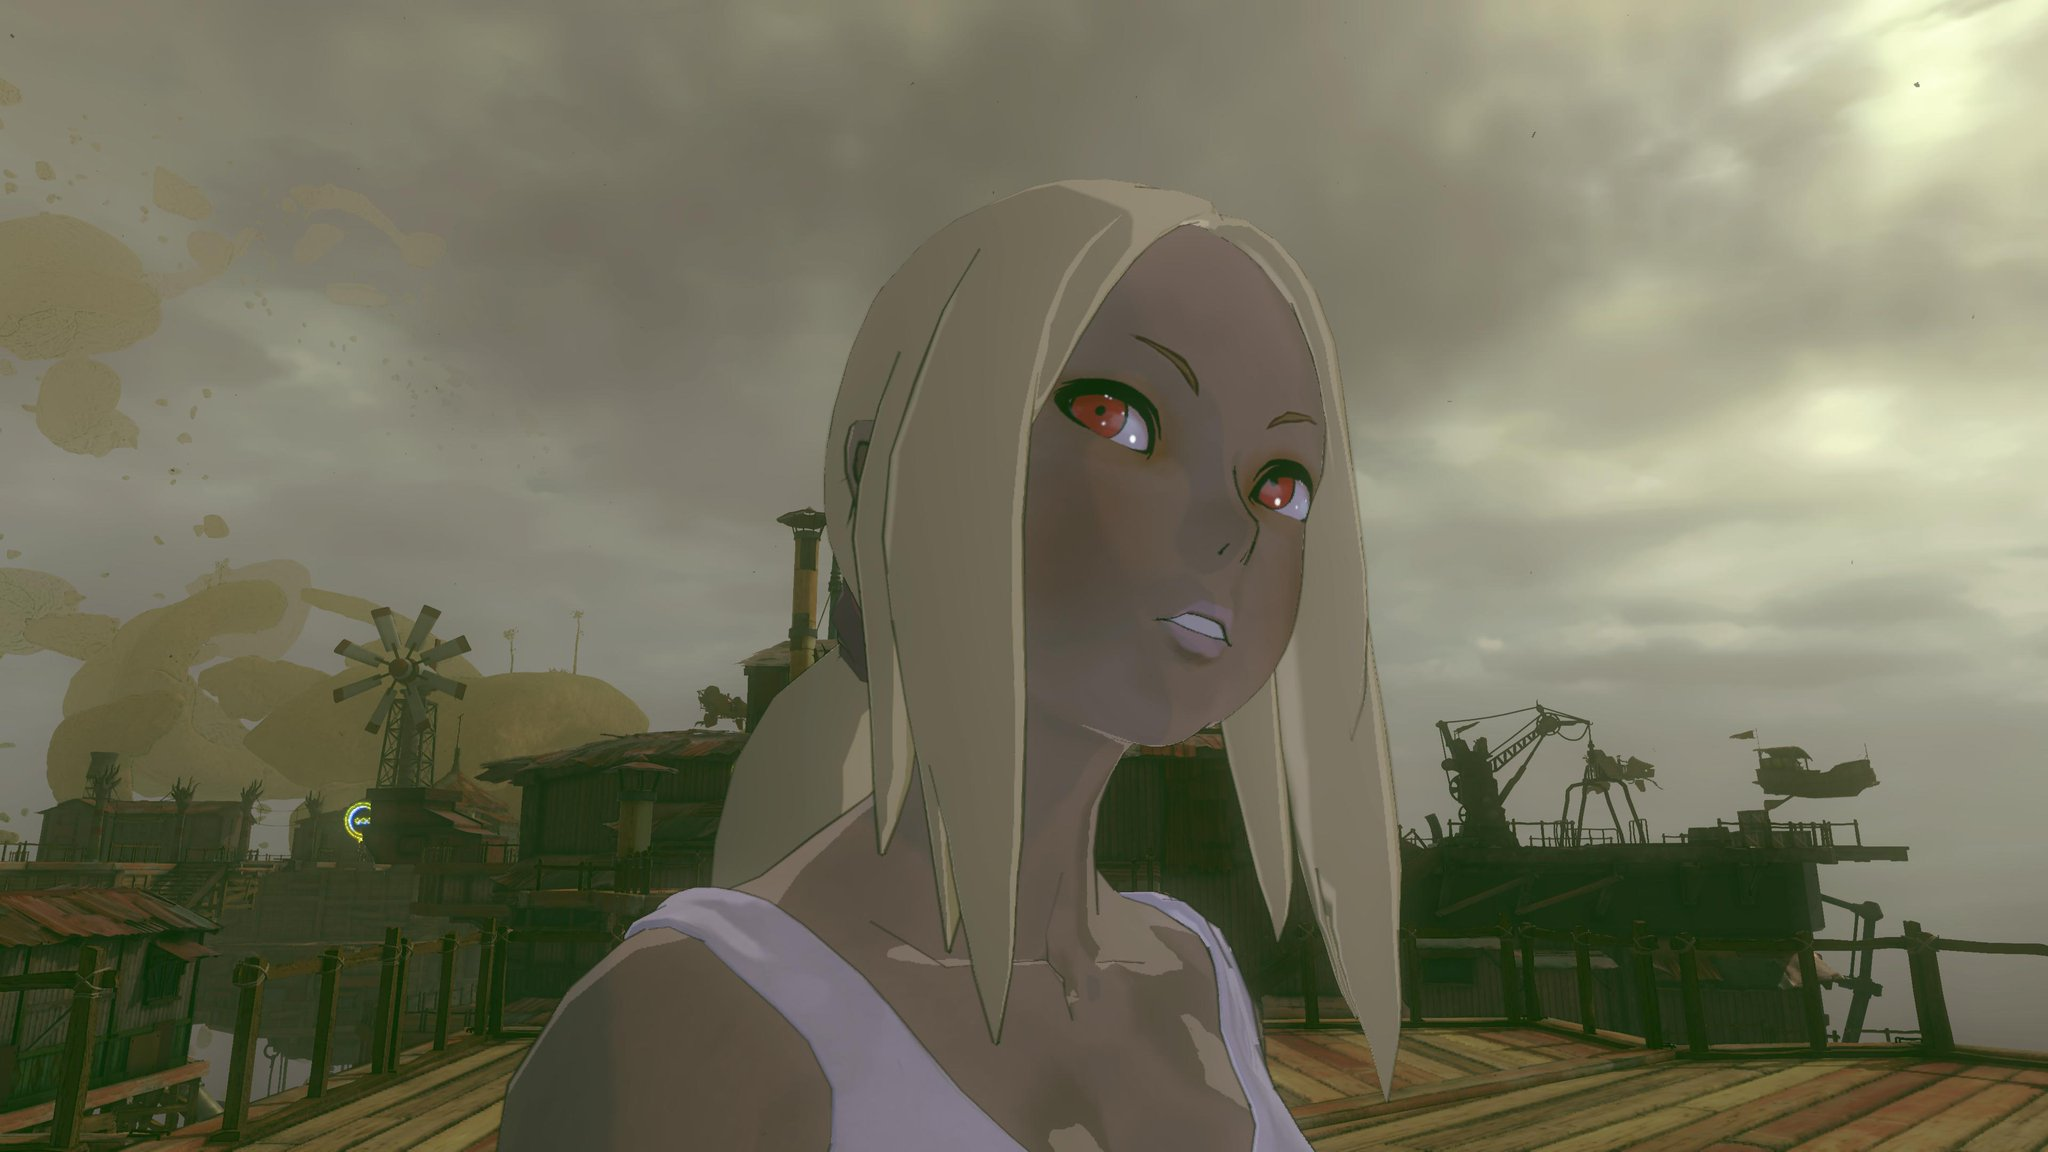 Gravity Rush 2 Photo Mode not Working